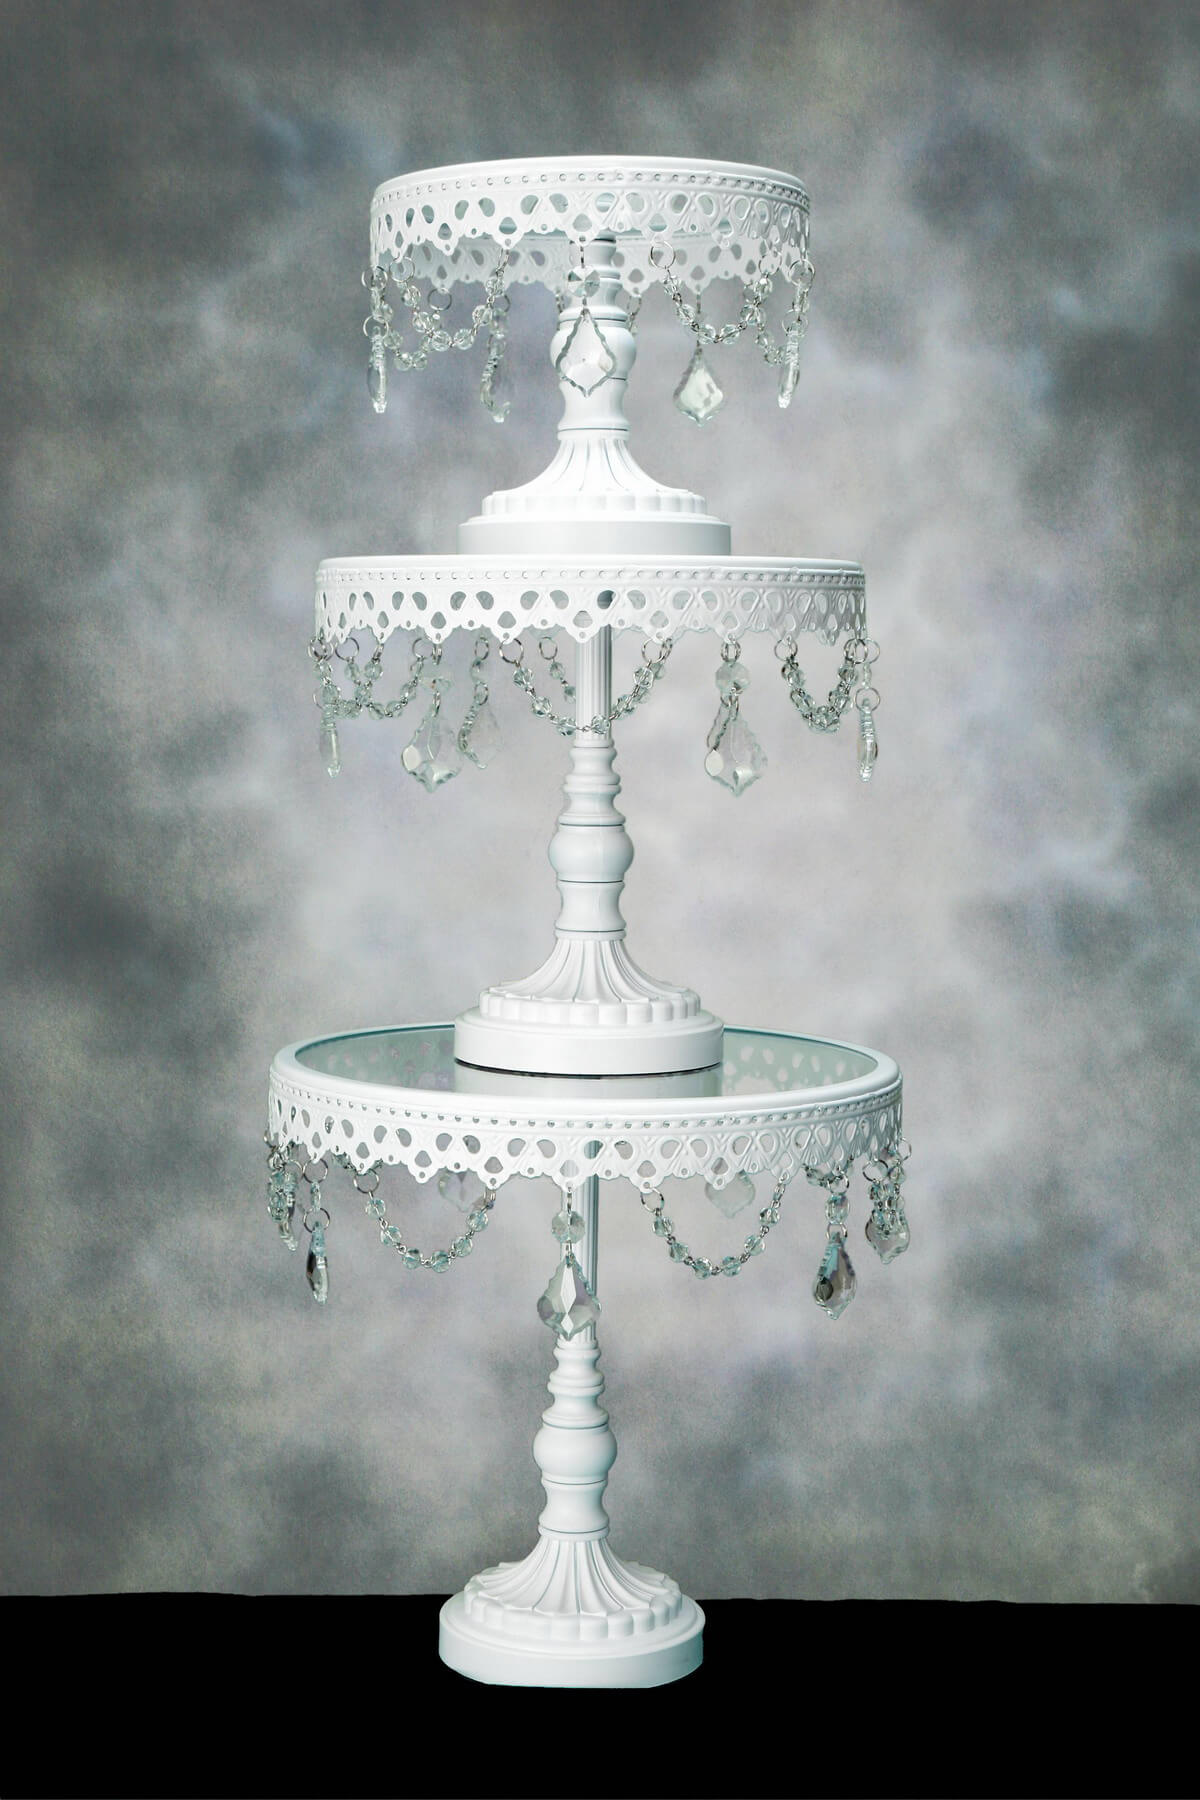 Black Cake Stands For Wedding Cakes